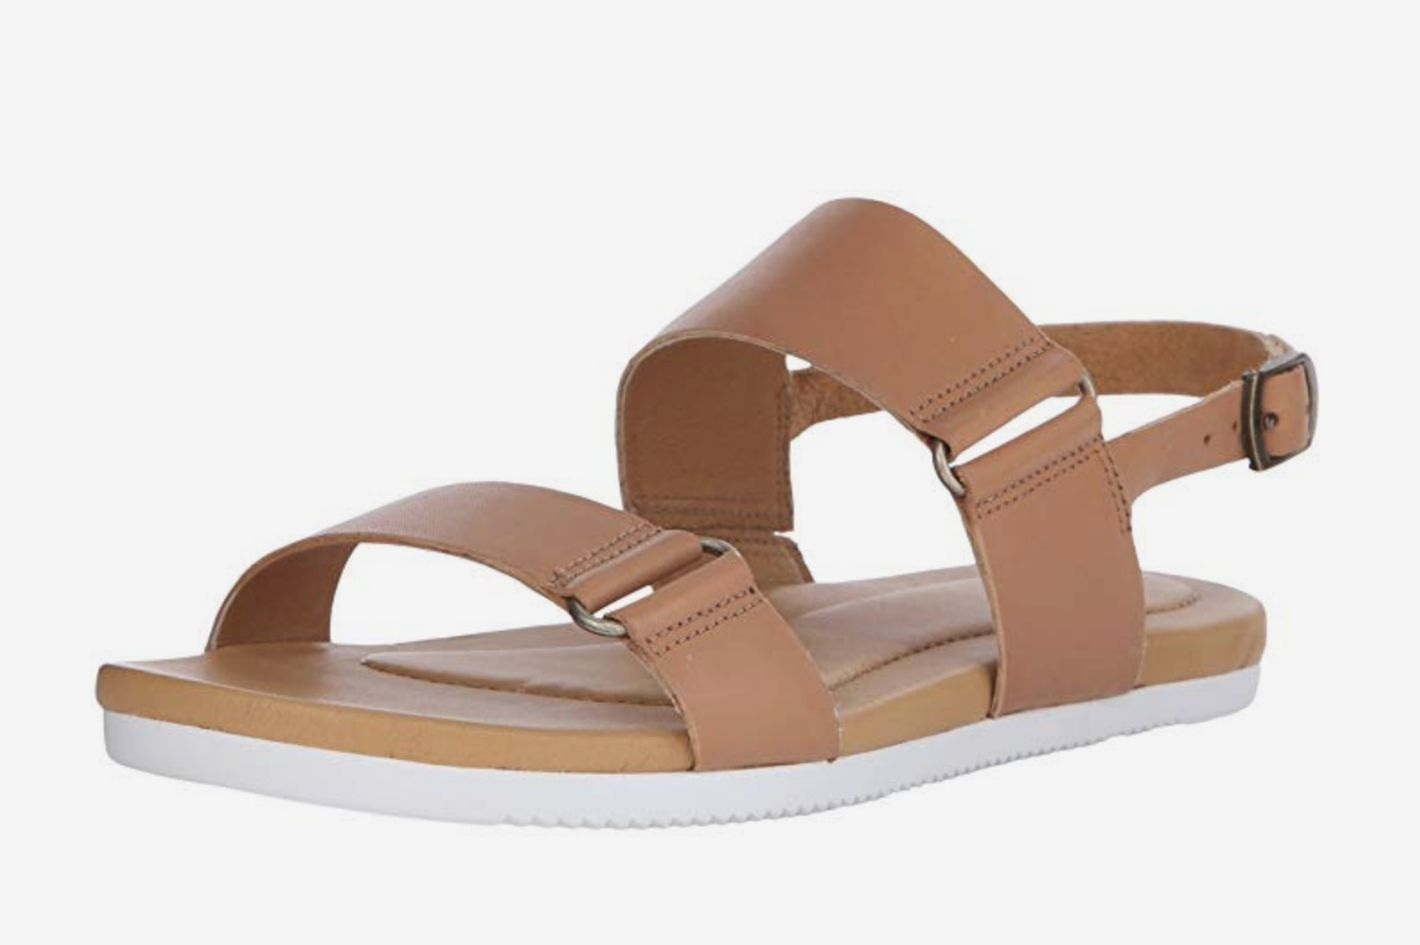 Teva Women s Avalina Sandal Leather Sandal at Amazon b067e617625f5